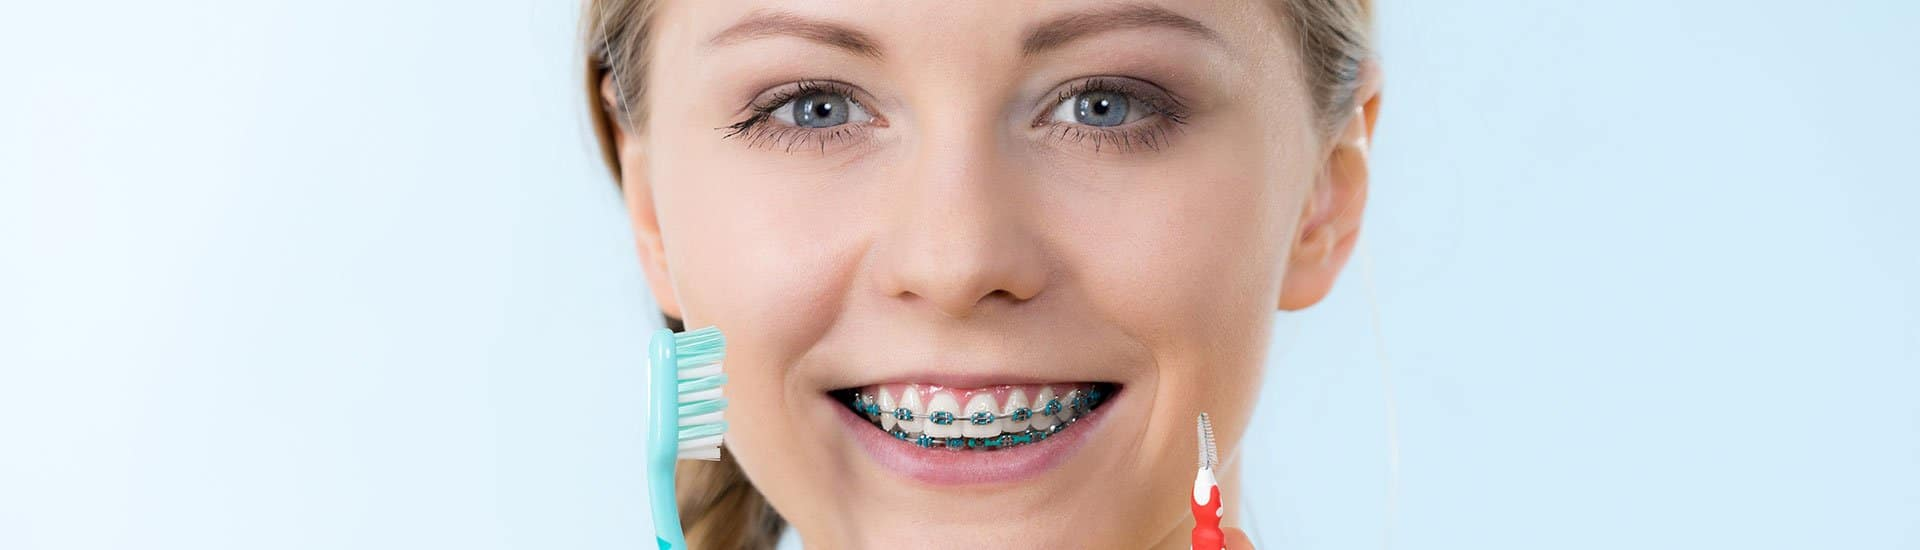 Braces Care: Best Practices for Maintaining Your Braces